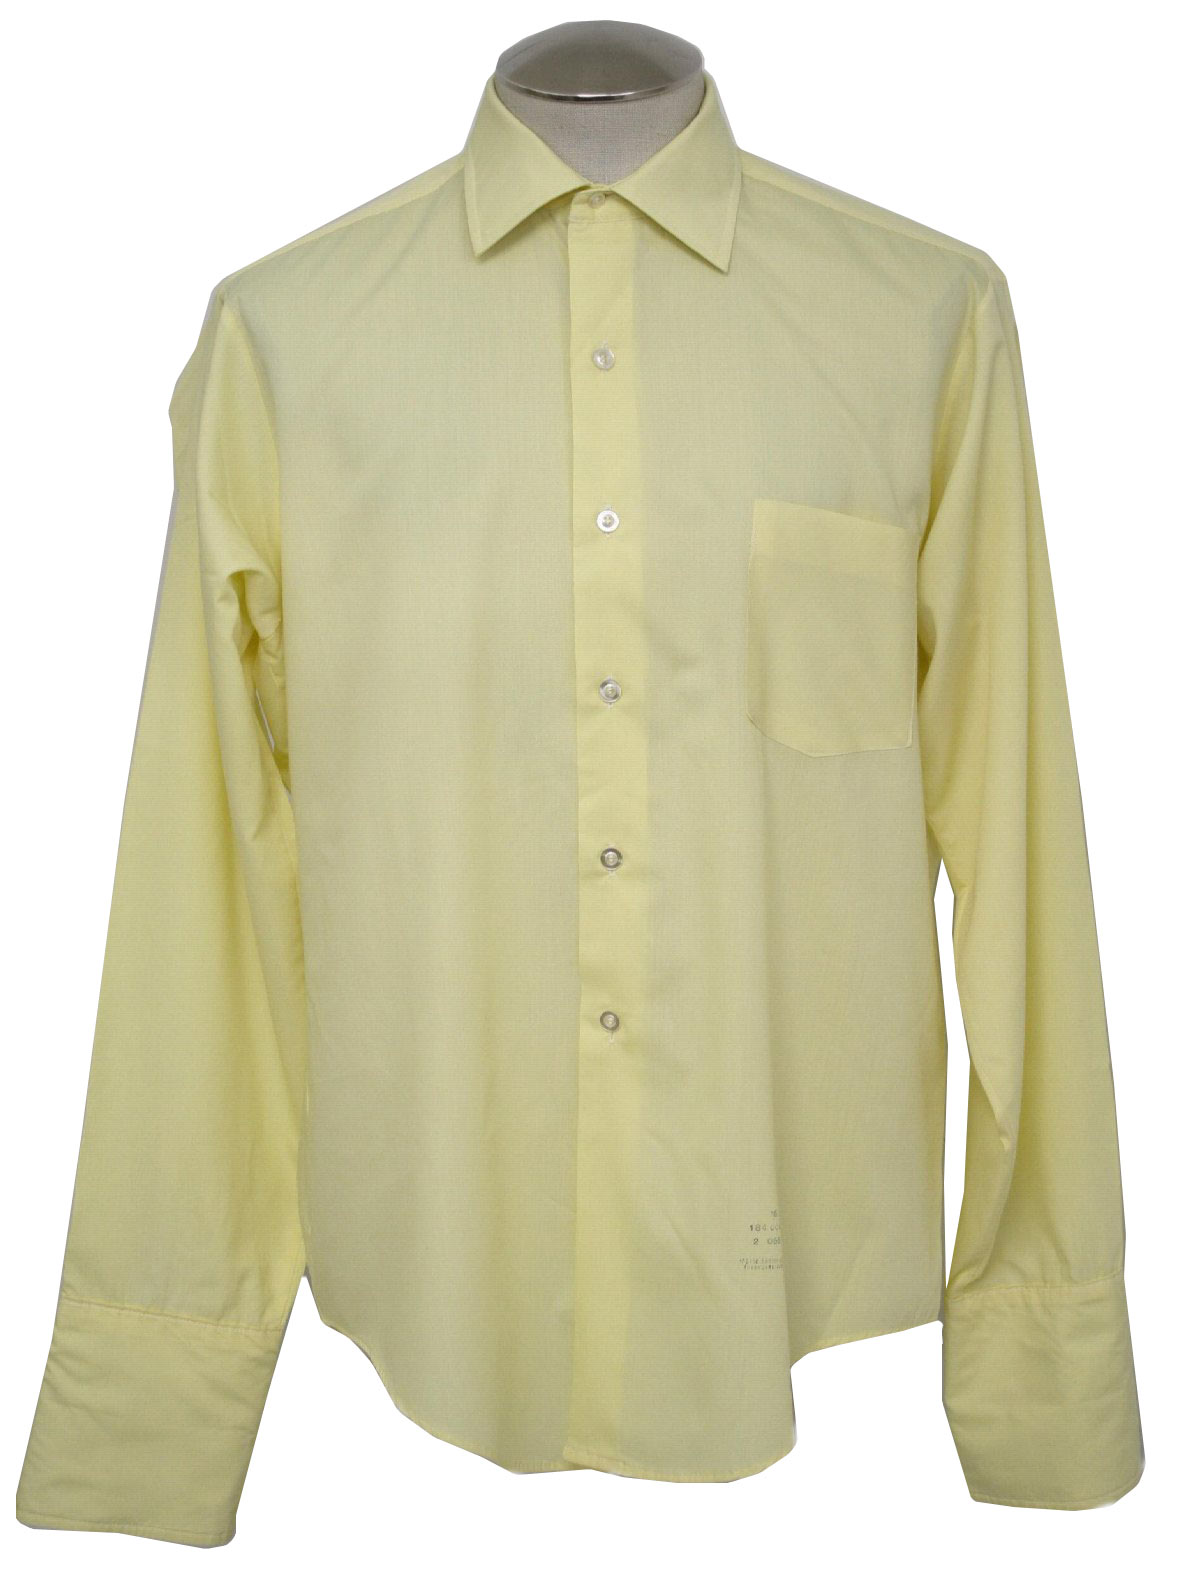 Vintage 1960's Shirt: Late 60s -Van Heusen Hampshire House- Mens ...